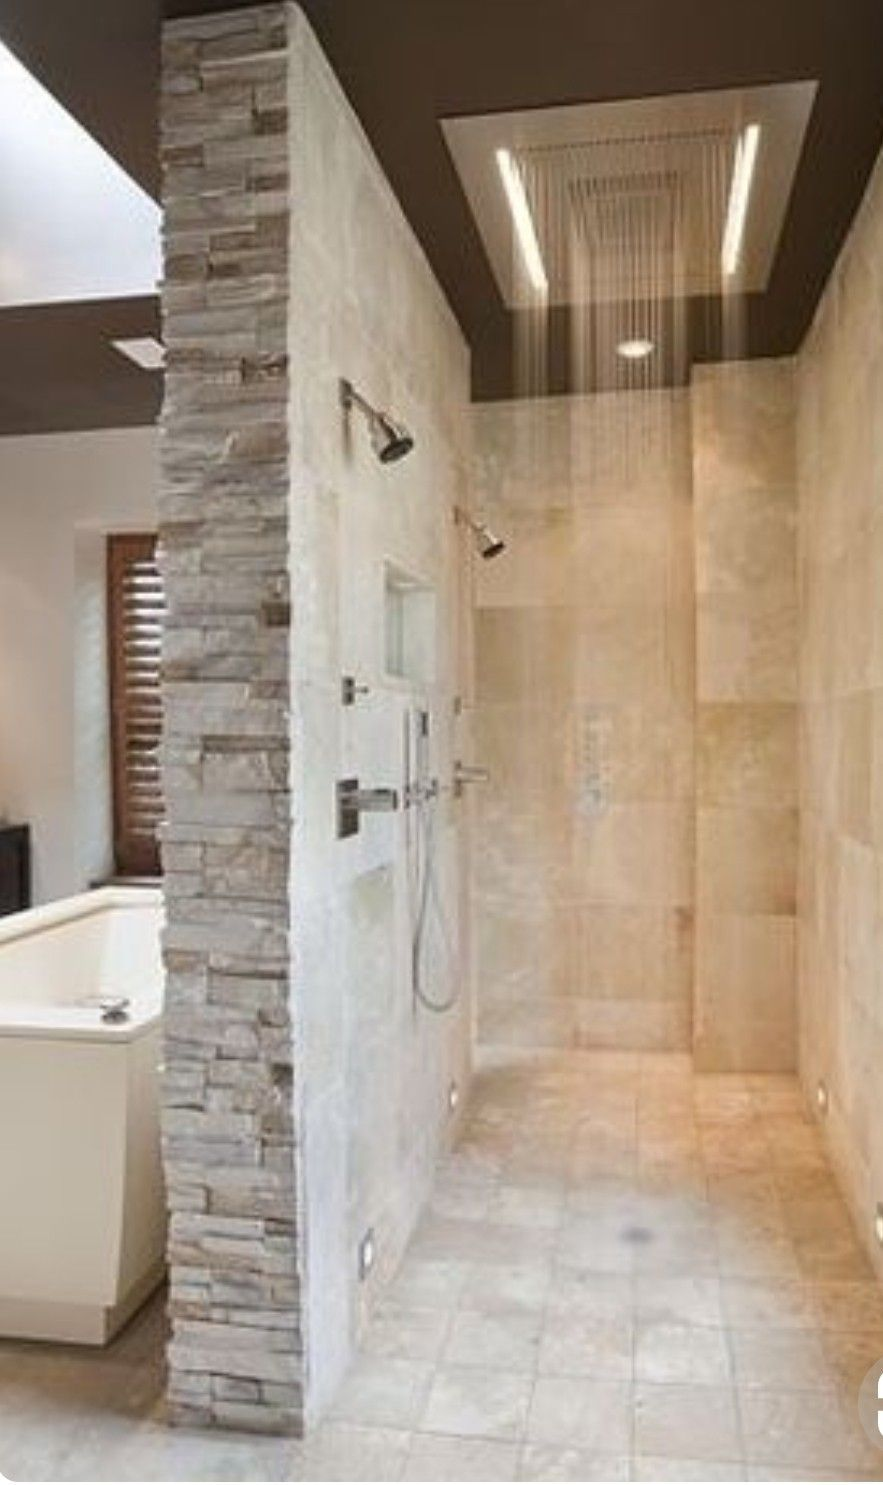 Shower With Two Entries Walk Through No Glass Doors Rain Head In Ceiling And Shower Heads And Body Sprays For Dream House Bathrooms Remodel Dream Bathrooms